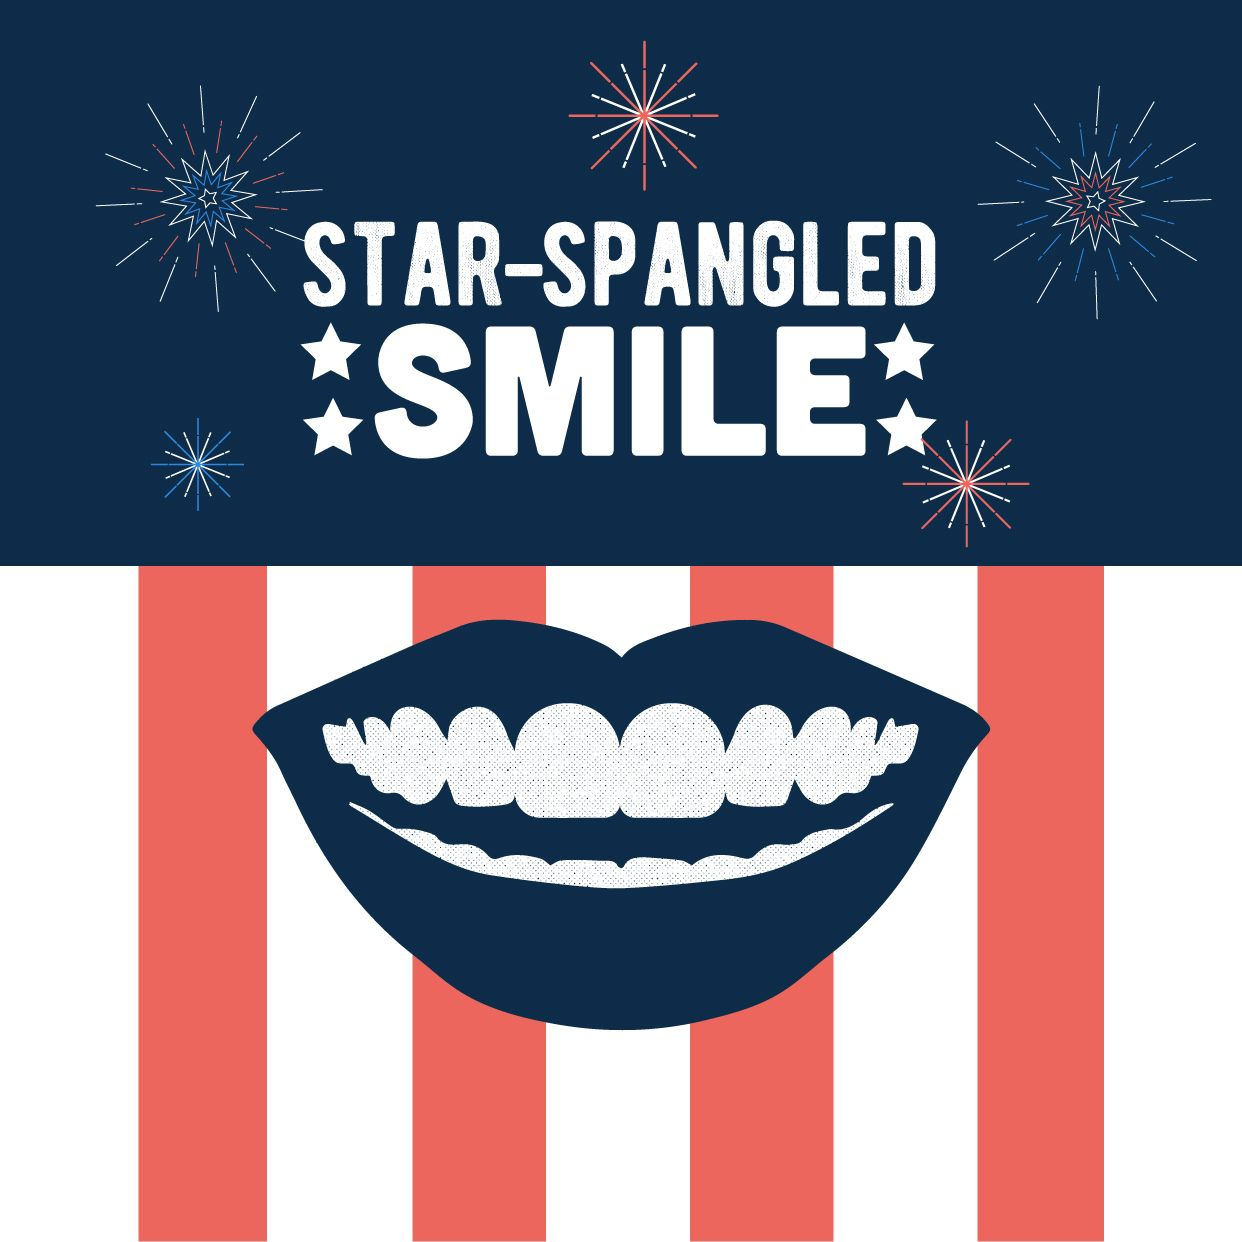 Let That Smile Shine As Bright As The Fireworks Happy 4th Of July Fourthofjuly Dental Fun Dental Posts Dental Marketing